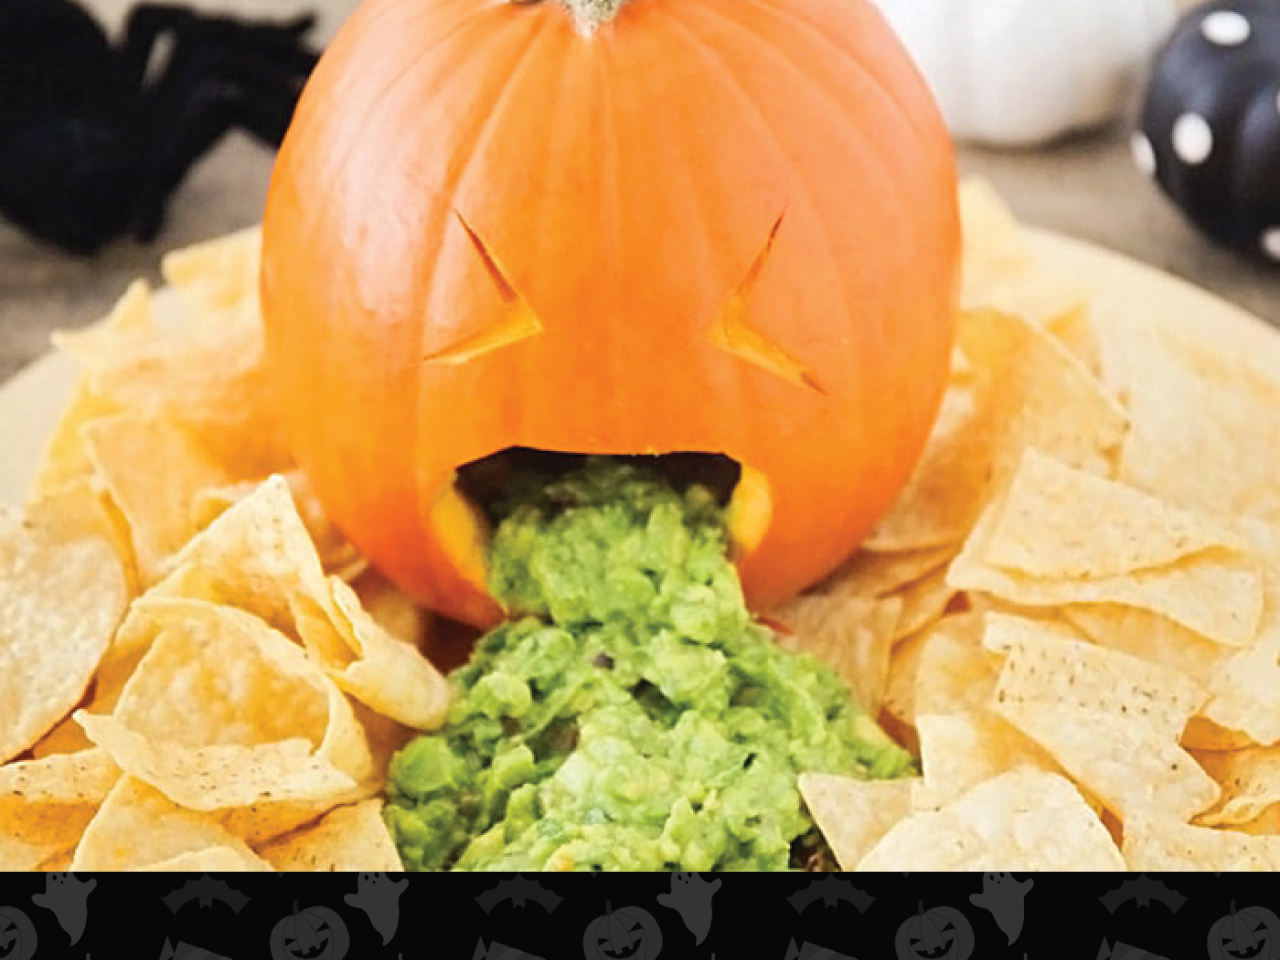 pumpkin barfing guacamole onto a platter of chips